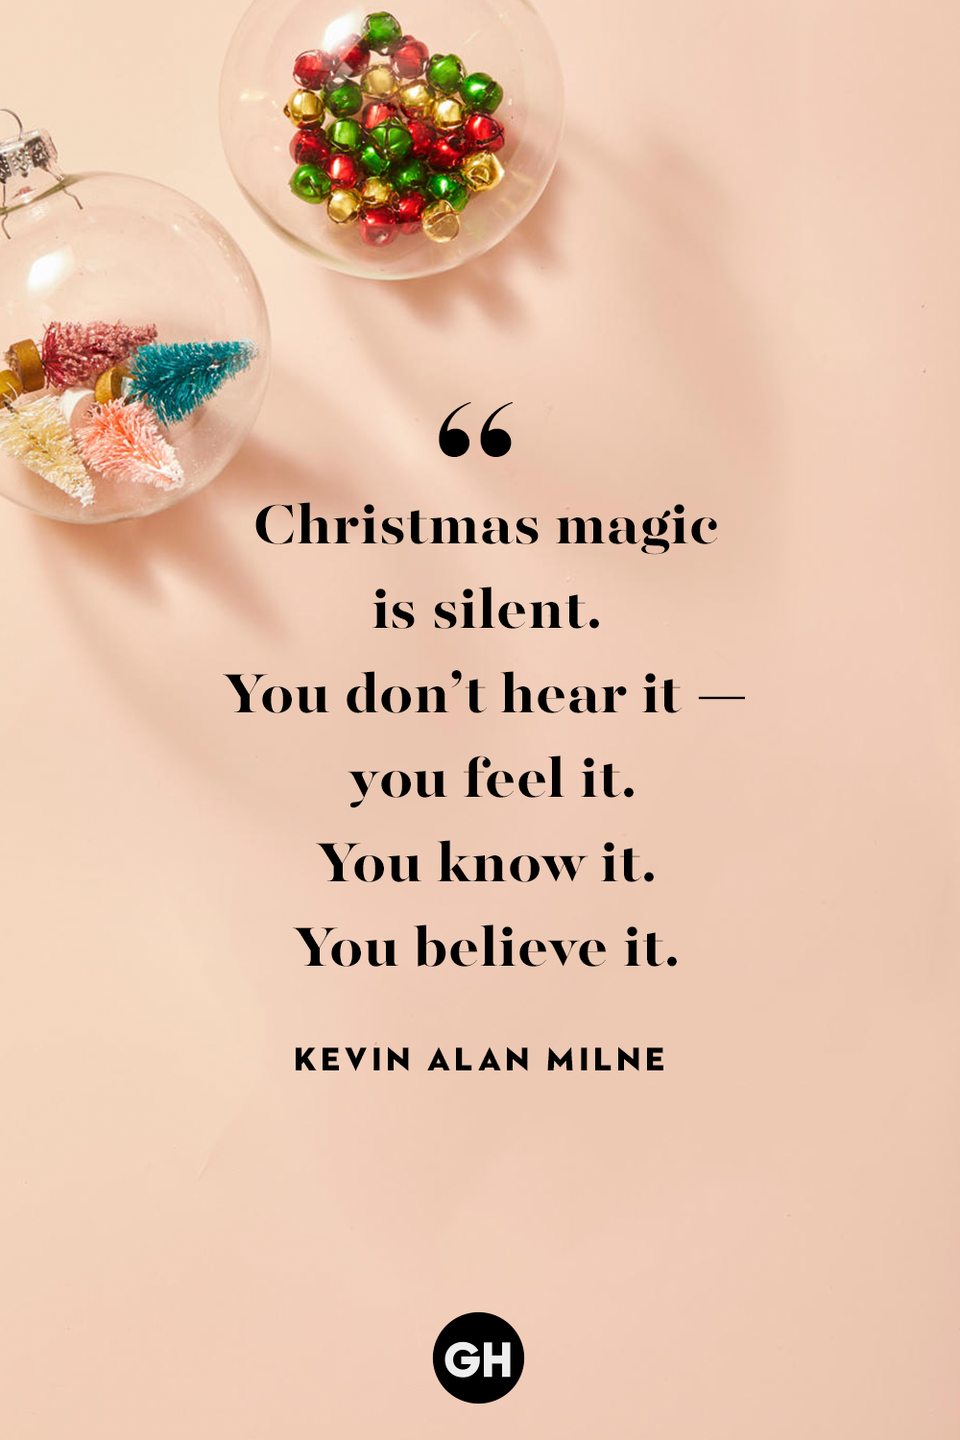 <p>Christmas magic is silent. You don't hear it — you feel it. You know it. You believe it. </p>